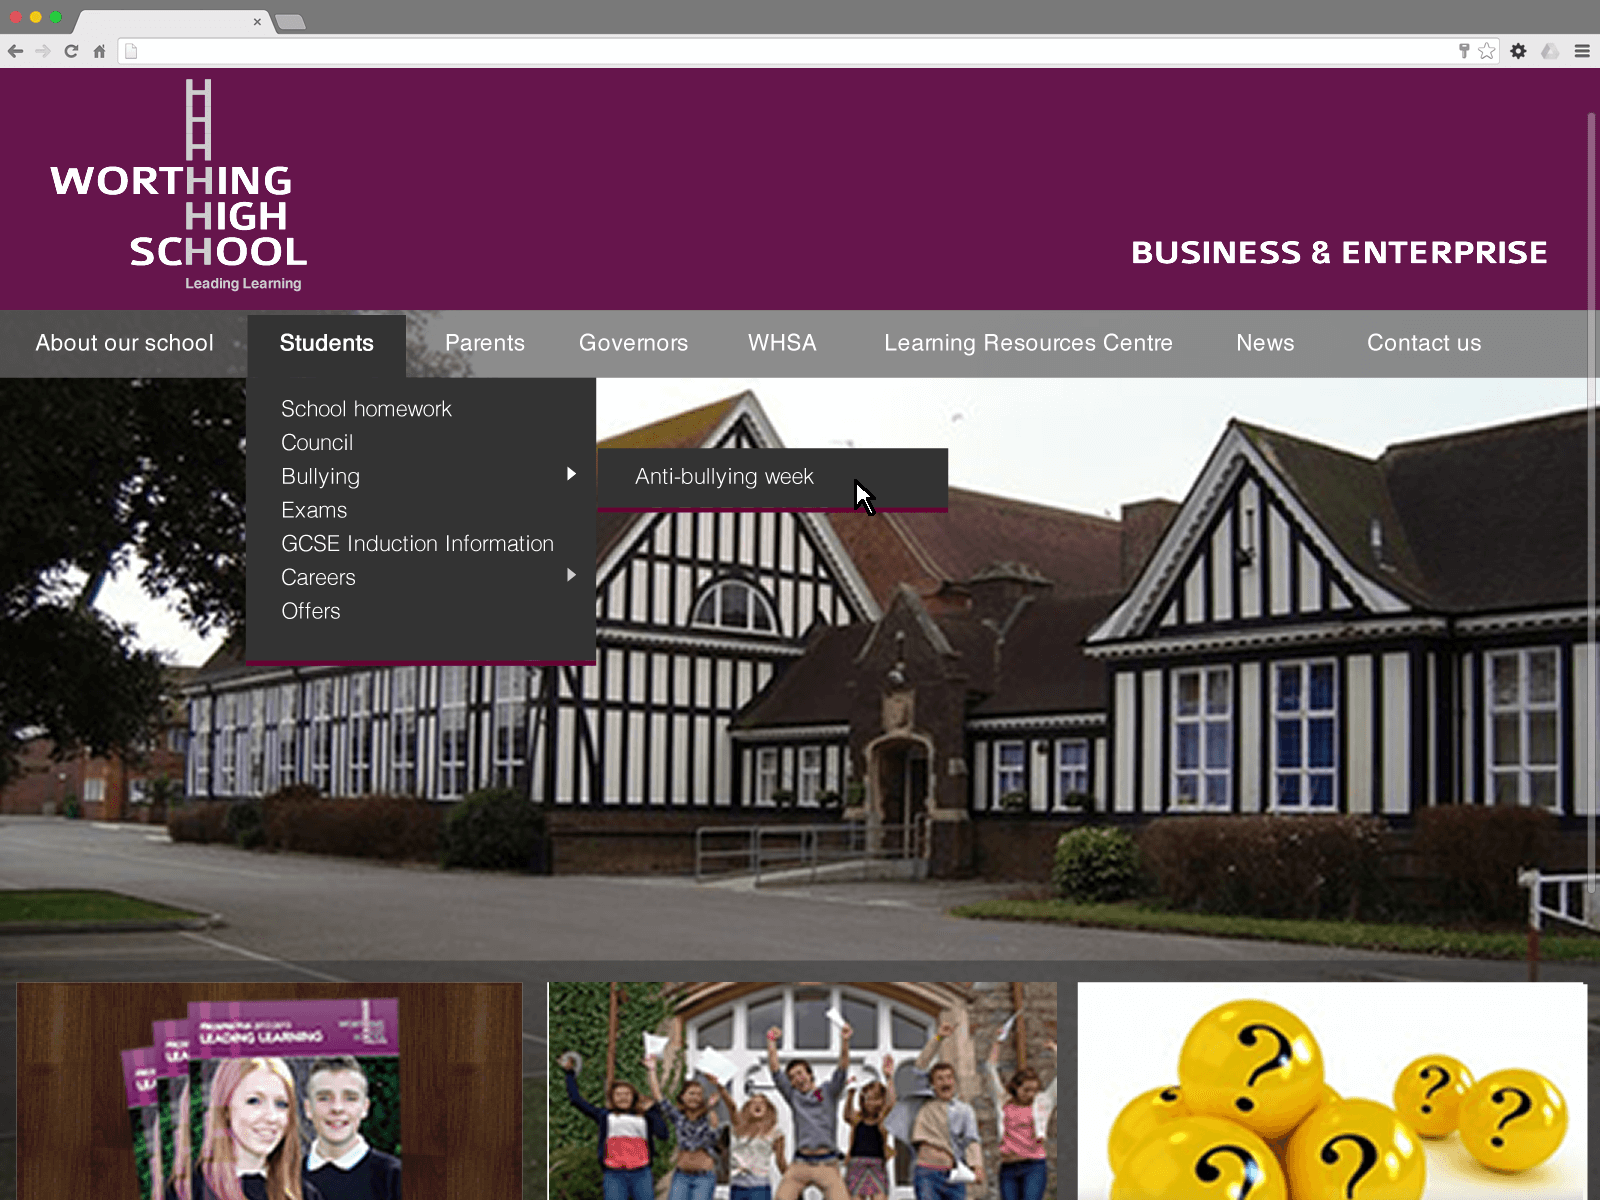 Worthing High School website (Website on desktop)